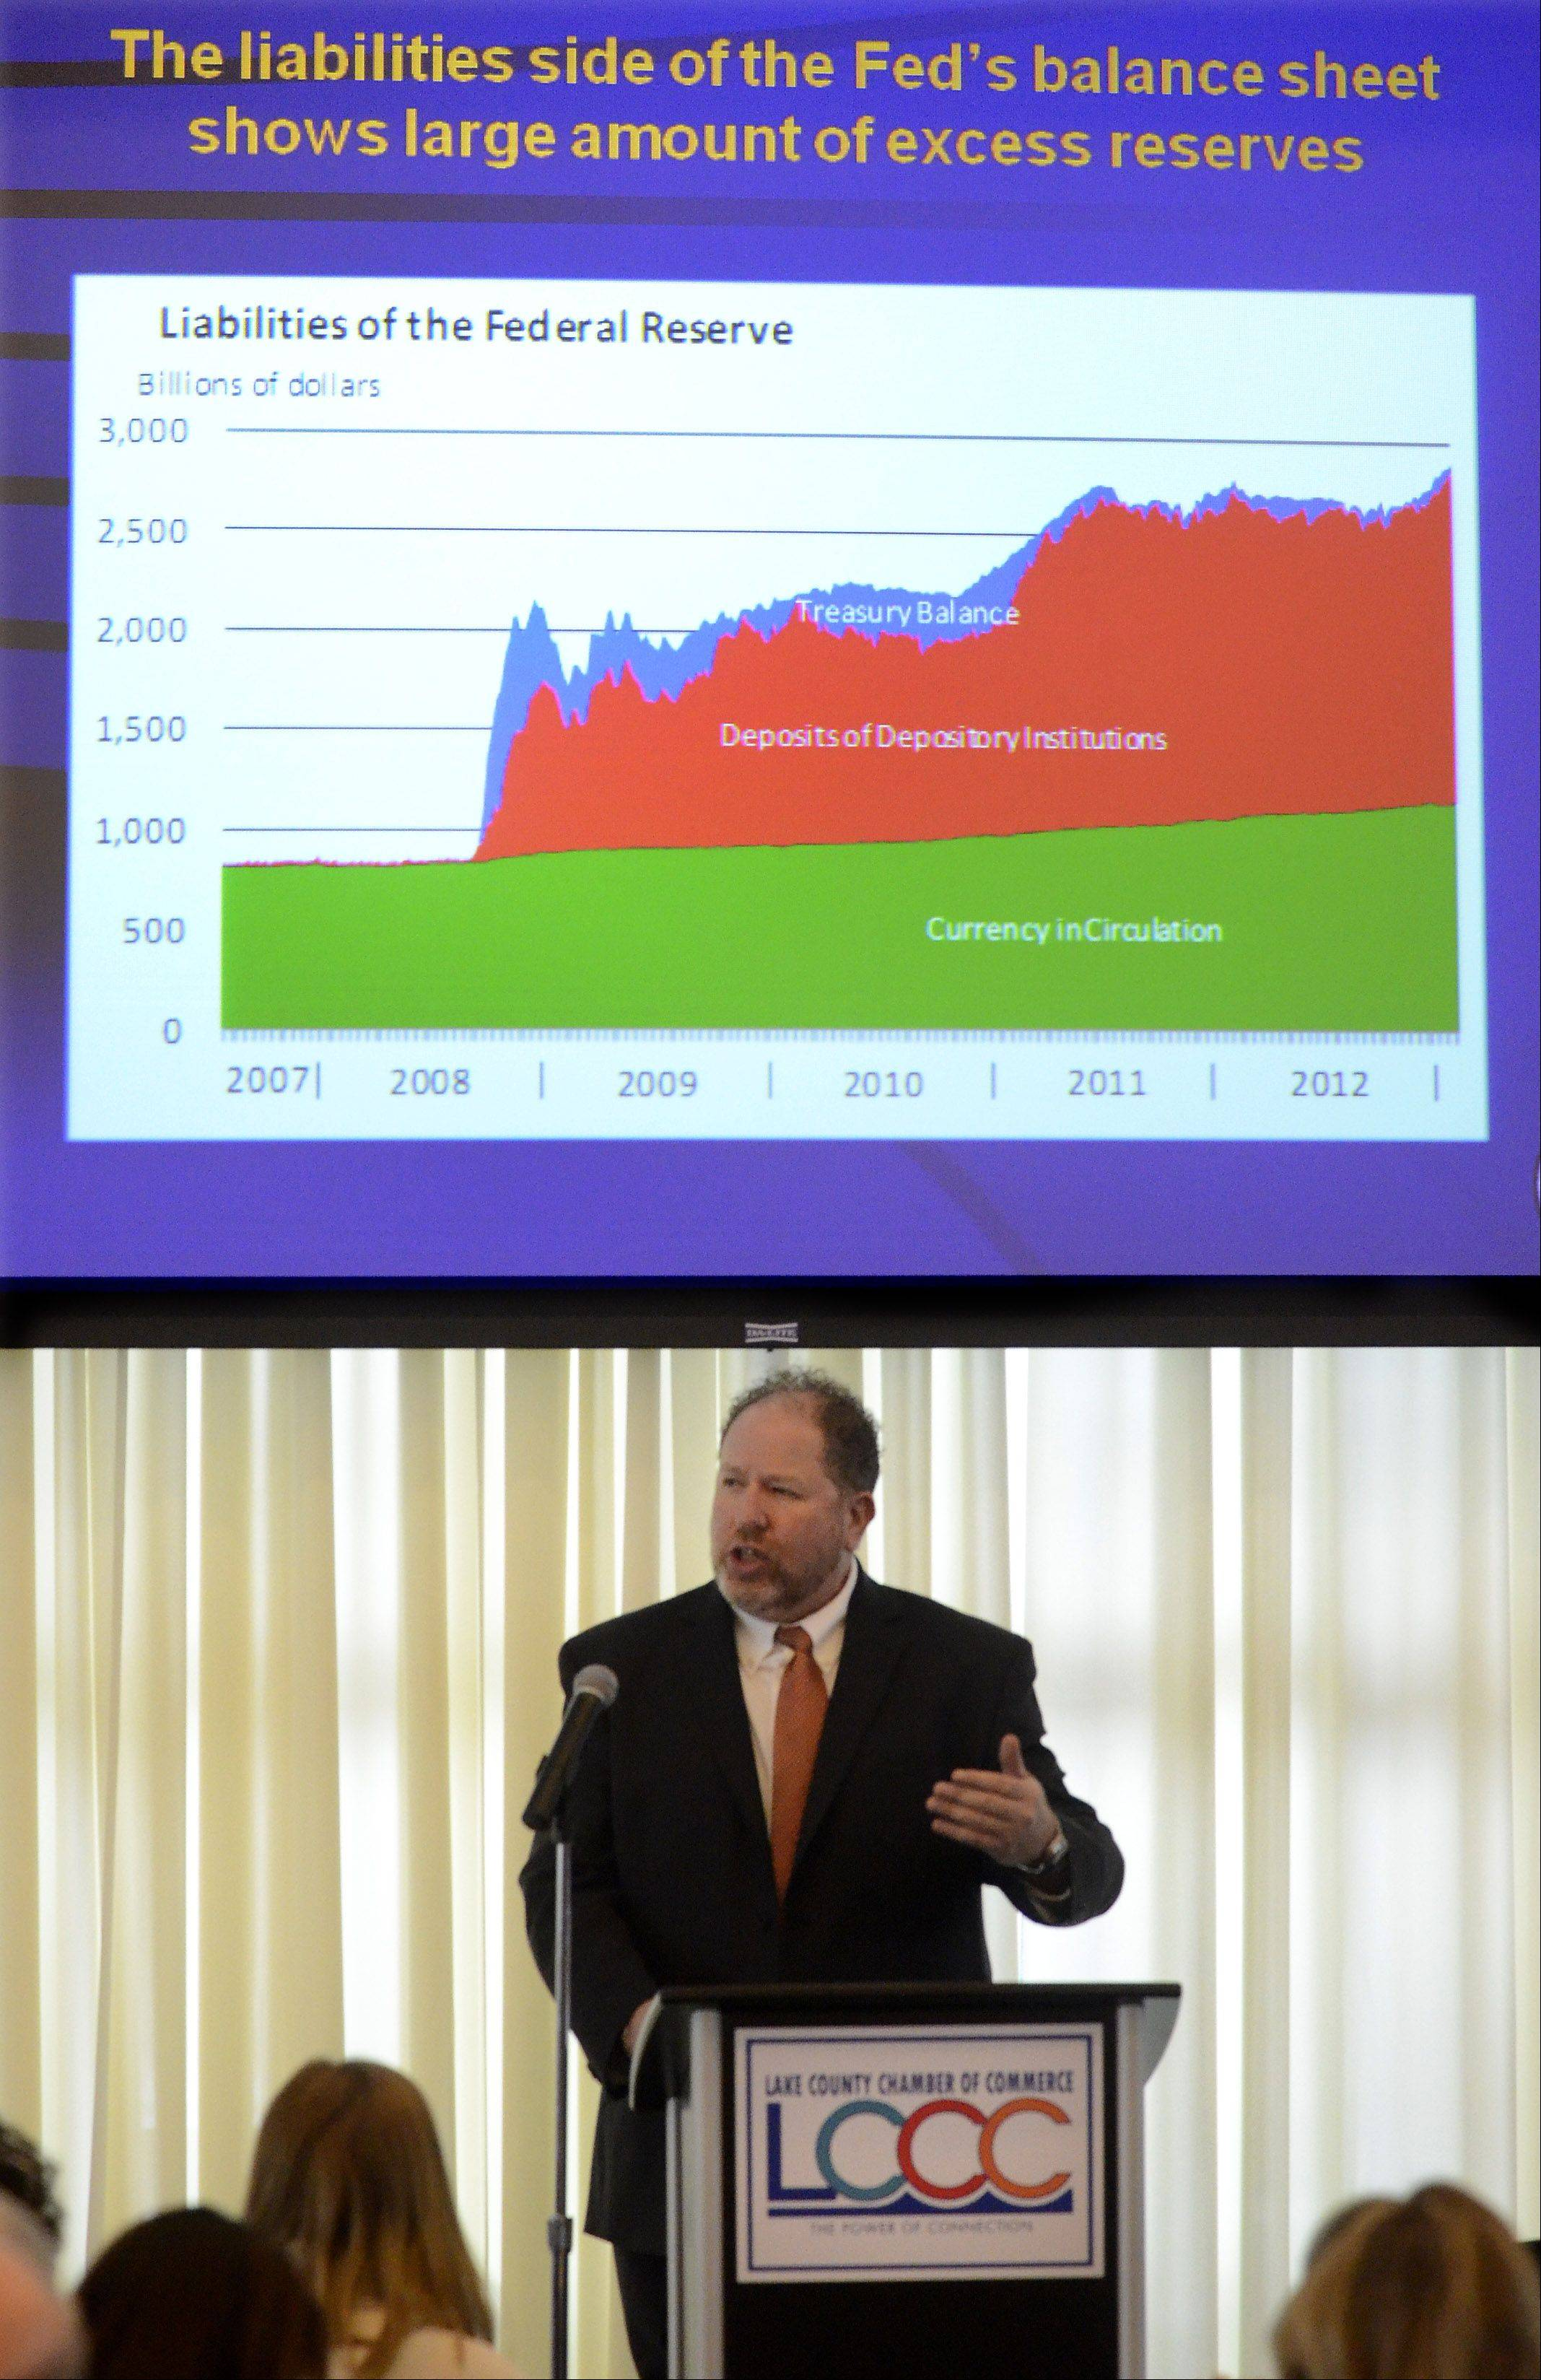 Keynote Speaker William Strauss, senior economist and economic adviser with the Federal Reserve Bank of Chicago, gave the economic forecast for 2013 to the 6th Annual Forecast Lake County Luncheon.